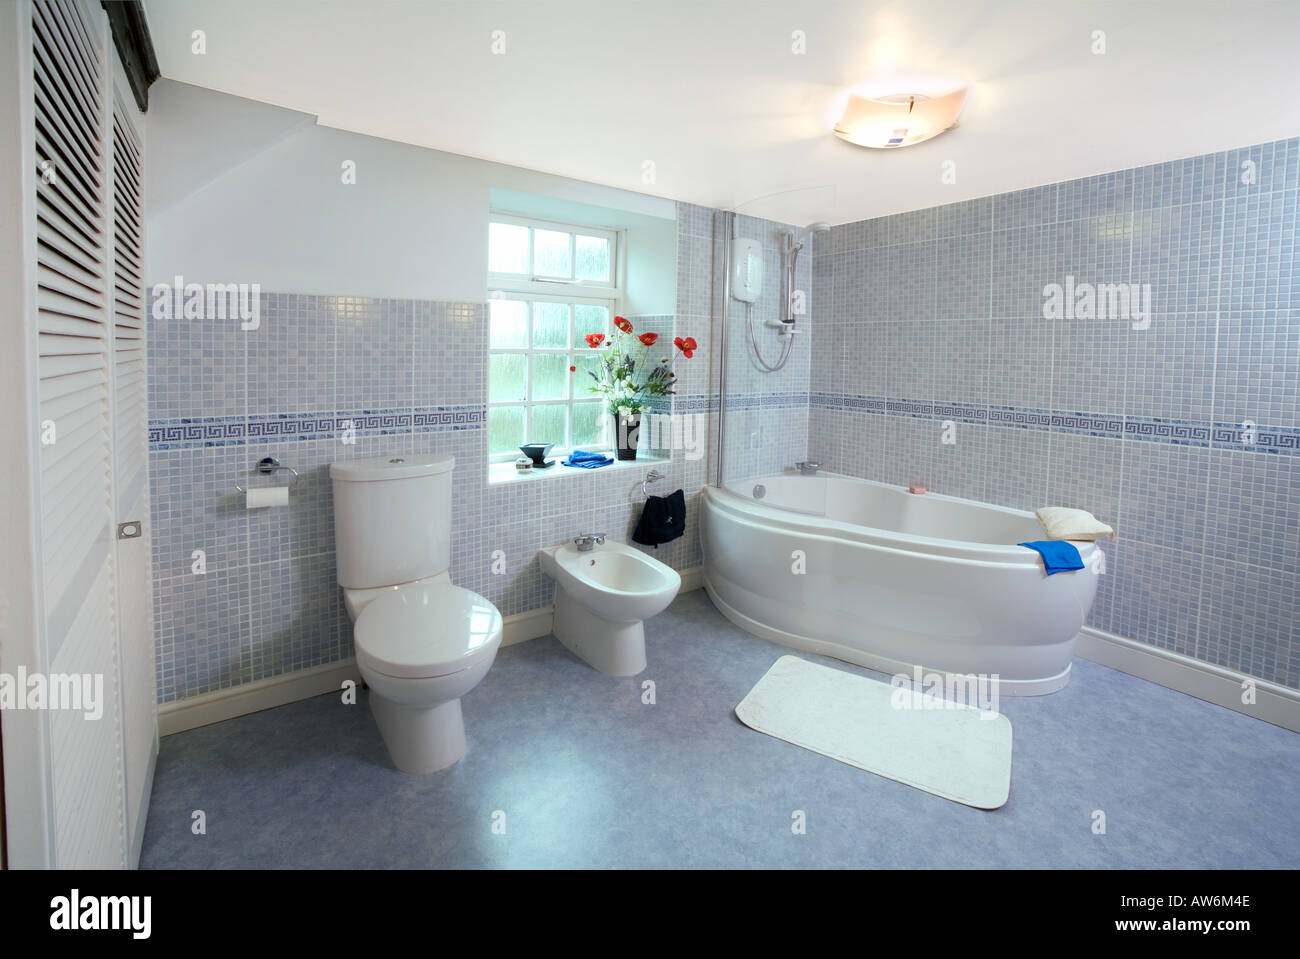 Bathroom Uk Modern Tiled Bathroom Uk With Bath Bidet And Toilet Stock Photo